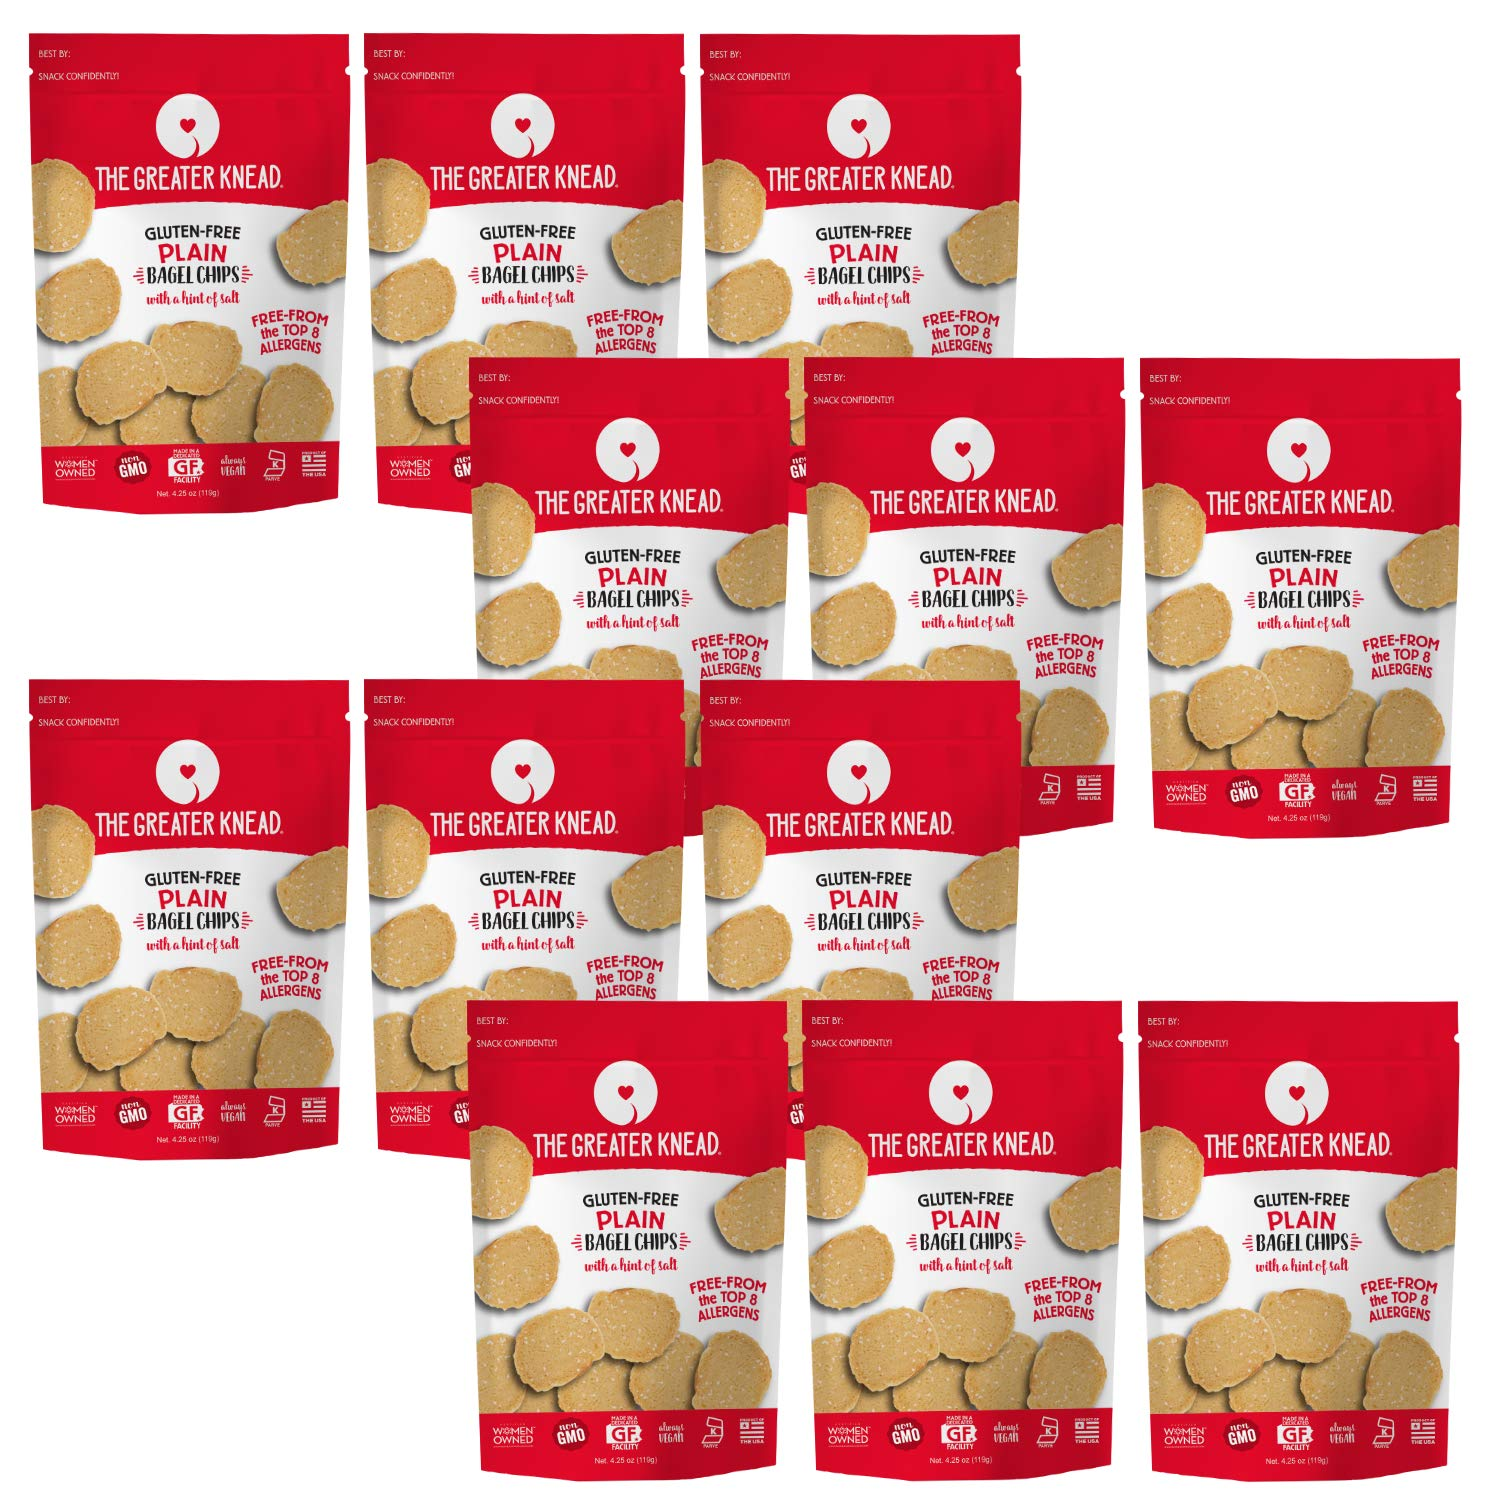 Greater Knead Gluten Free Bagel Chips - Plain, Vegan, non-GMO, Free of Wheat, Nuts, Soy, Peanuts, Tree Nuts (12 packs) by The Greater Knead